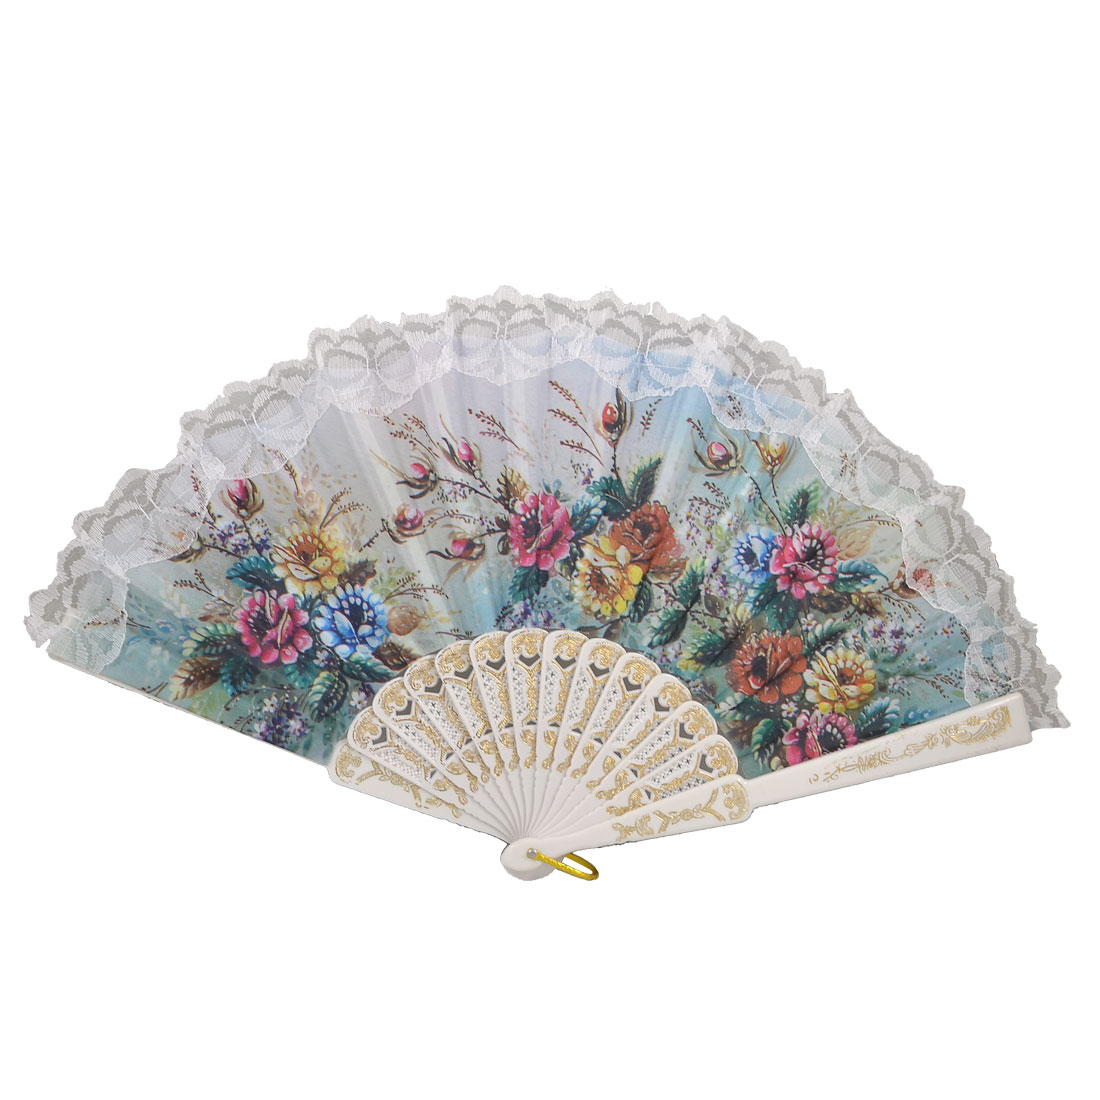 Dance Lace Trim Peony Print Foldable Hand Painted Fan Decoration